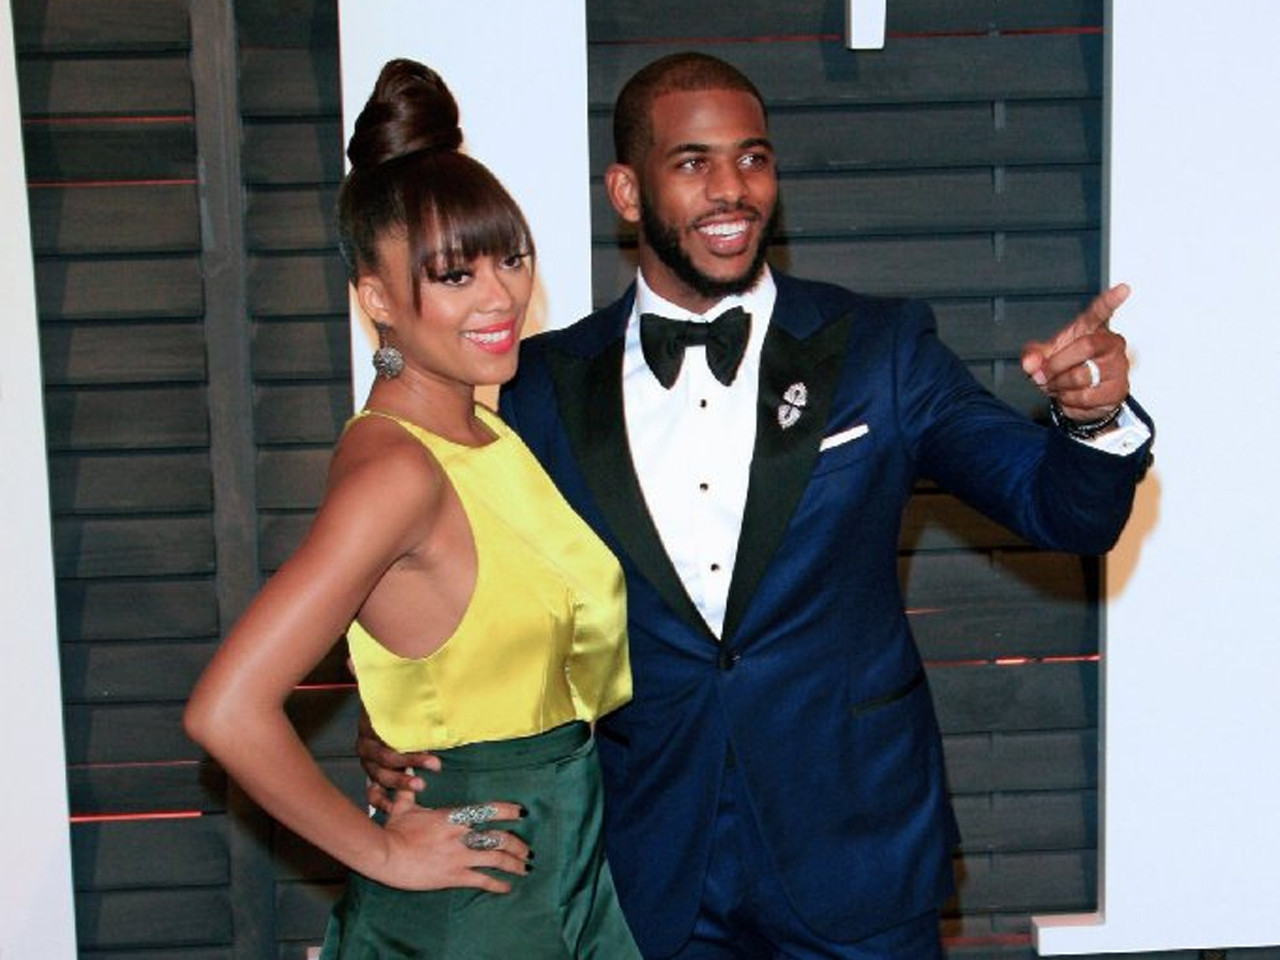 Chris Paul's wife, Jada, to host prom dress giveaway